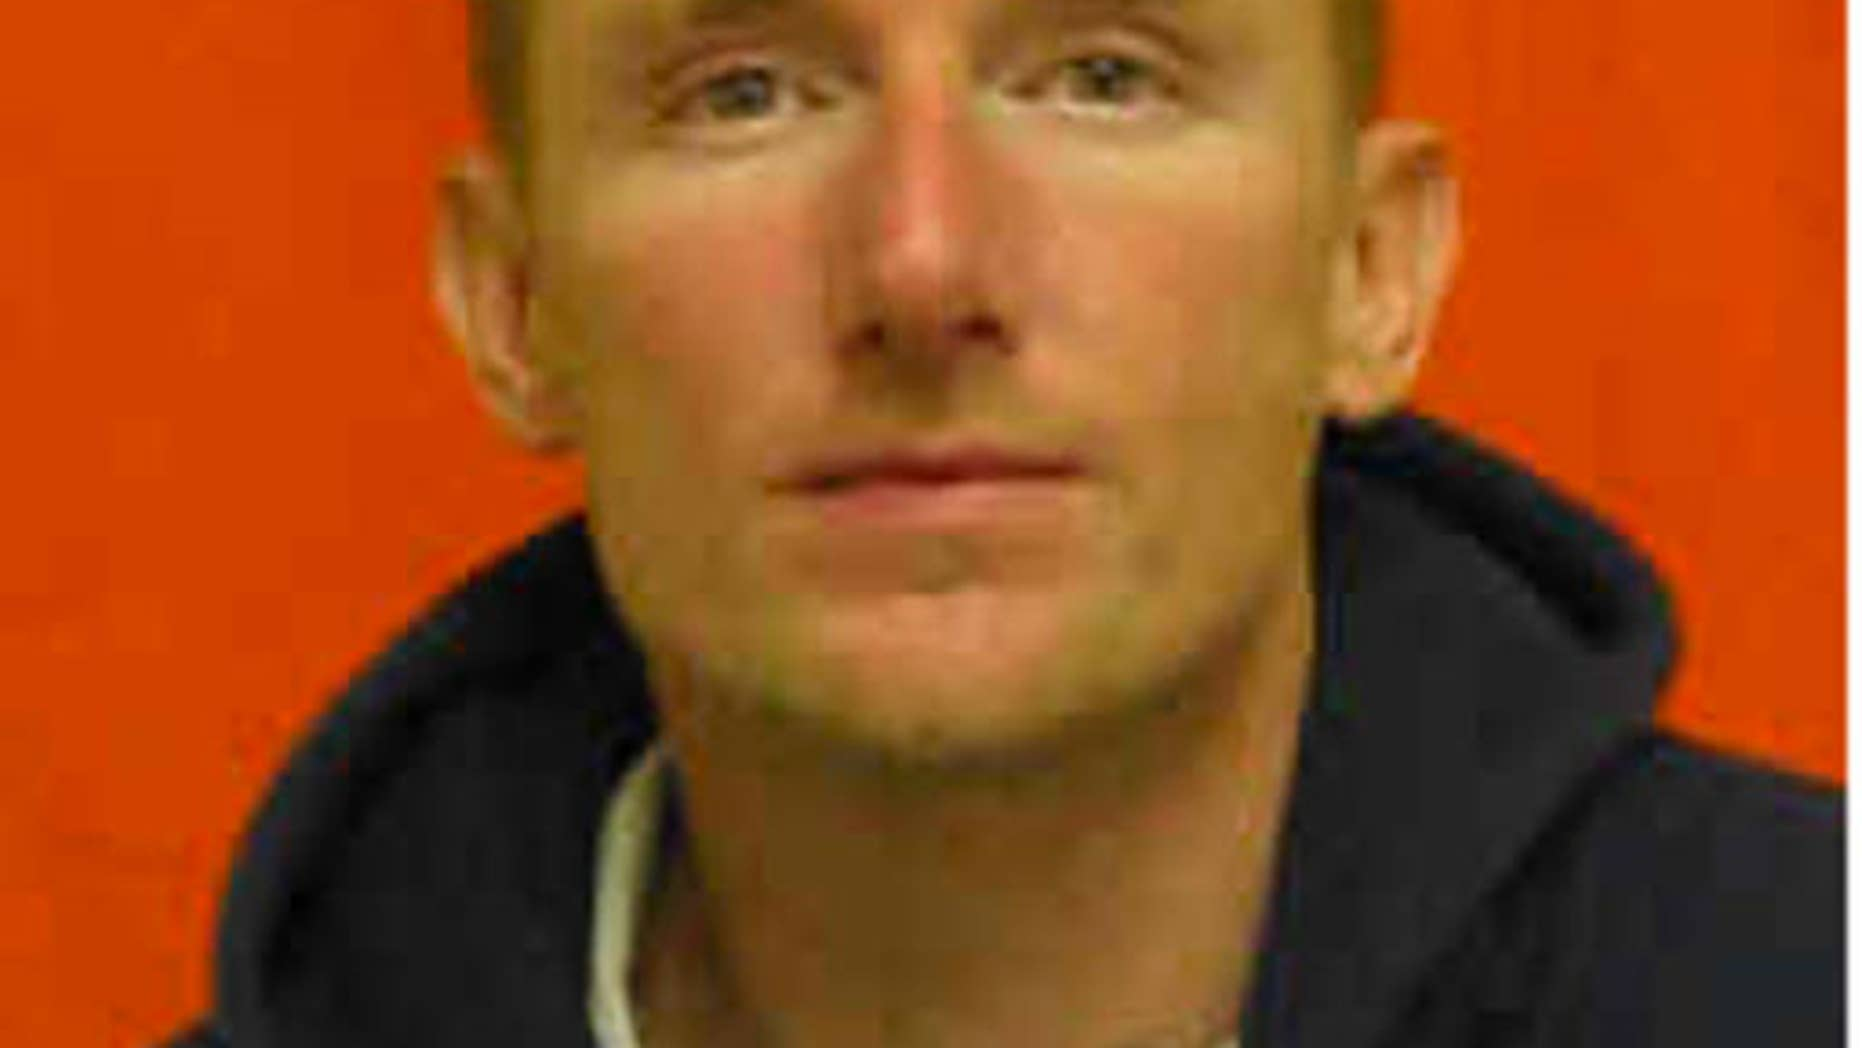 This photo provided by Ohio Department of Rehabilitation and Correction shows Jesse D. Hanes.   Dona Ana County Sheriff's spokeswoman Kelly Jameson says that Hanes is suspected of gunning down Hatch Police Officer Jose Chavez, 33, during a traffic stop Friday, Aug. 12, 2016. (Ohio Department of Rehabilitation and Correction via AP)